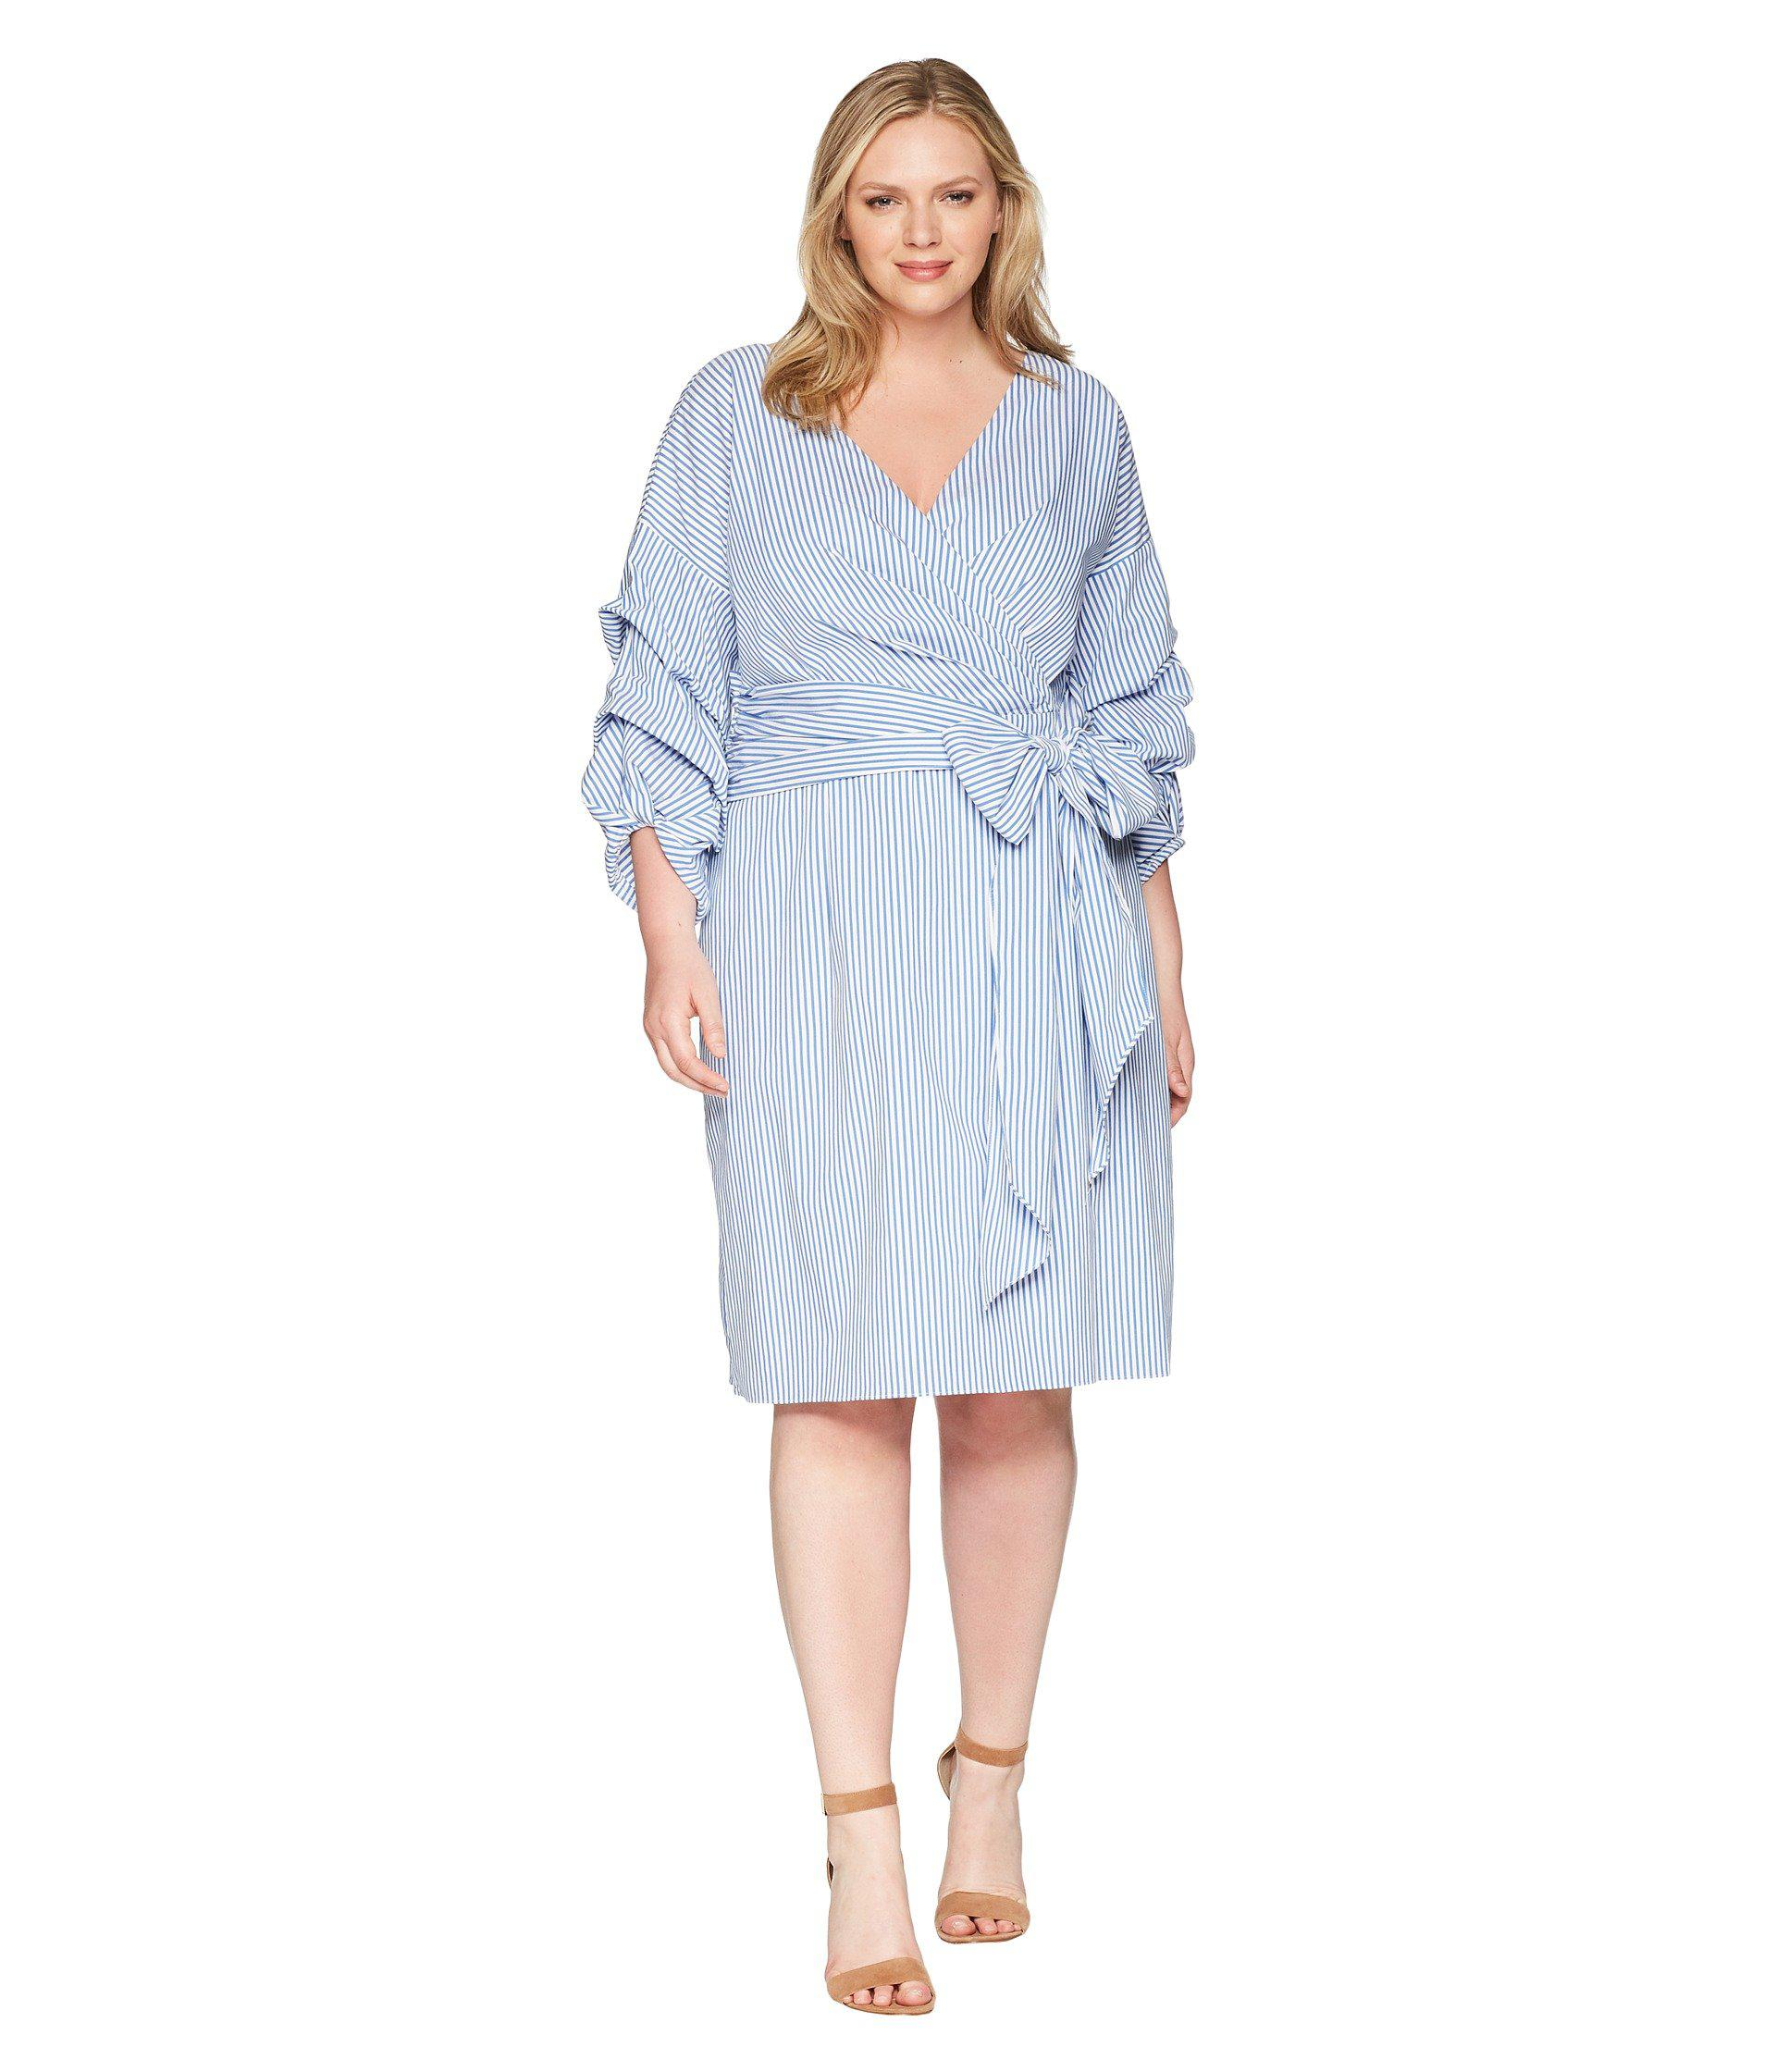 b31947b06d8 Adrianna Papell Plus Size Short Wrap Dress Long Sleeves in Blue - Lyst